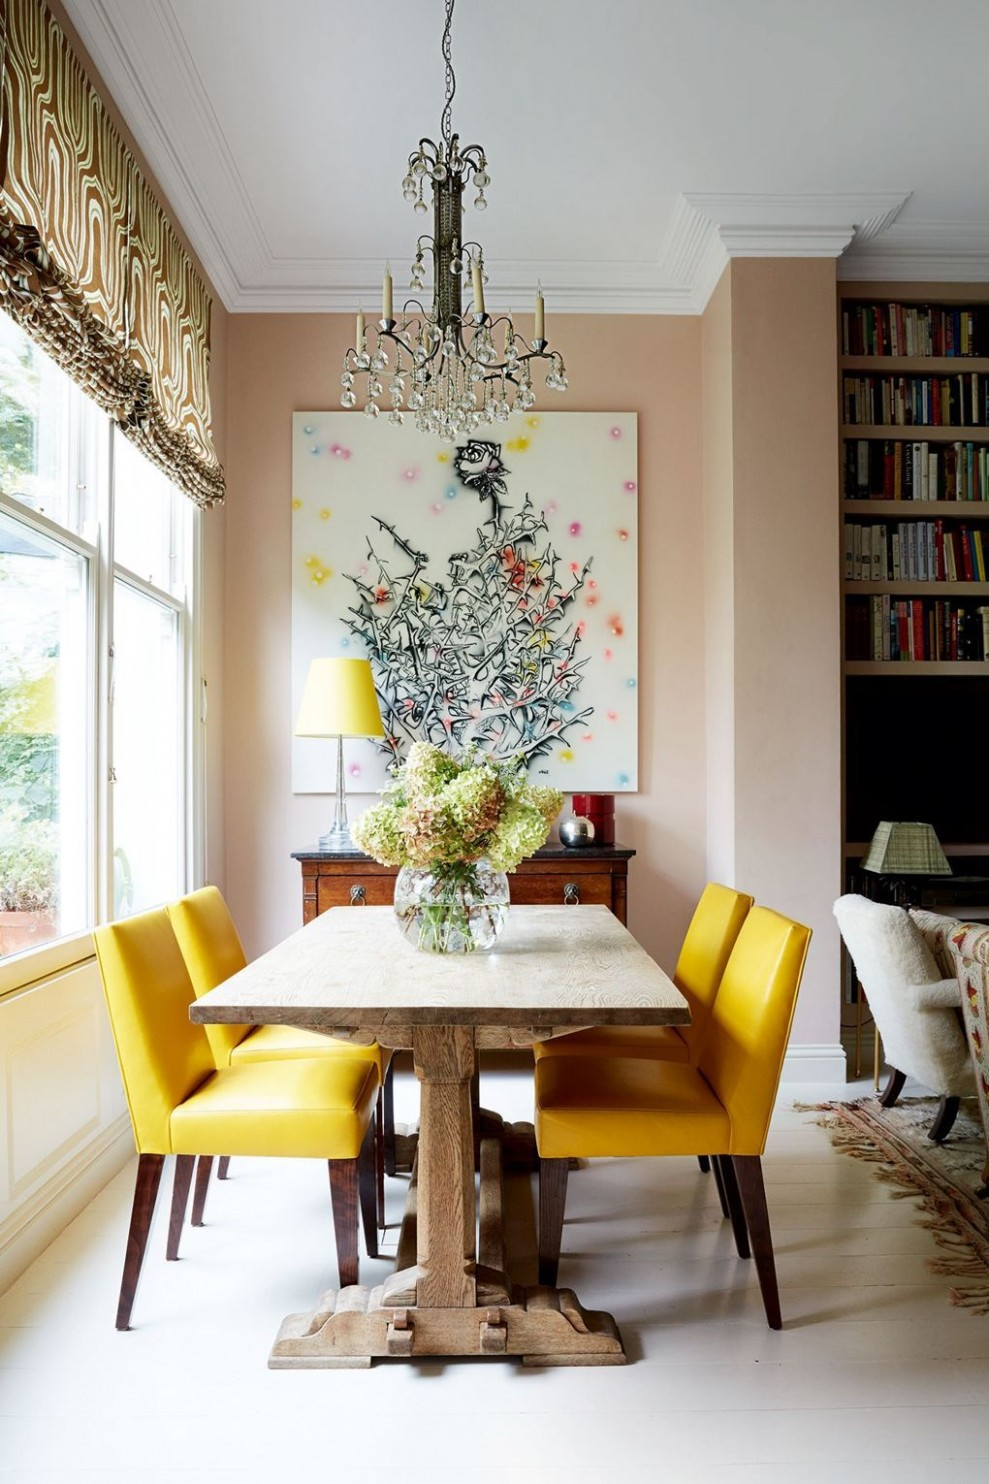 Small dining room ideas  Yellow dining room, Yellow dining chairs  - Small Dining Room Ideas Uk